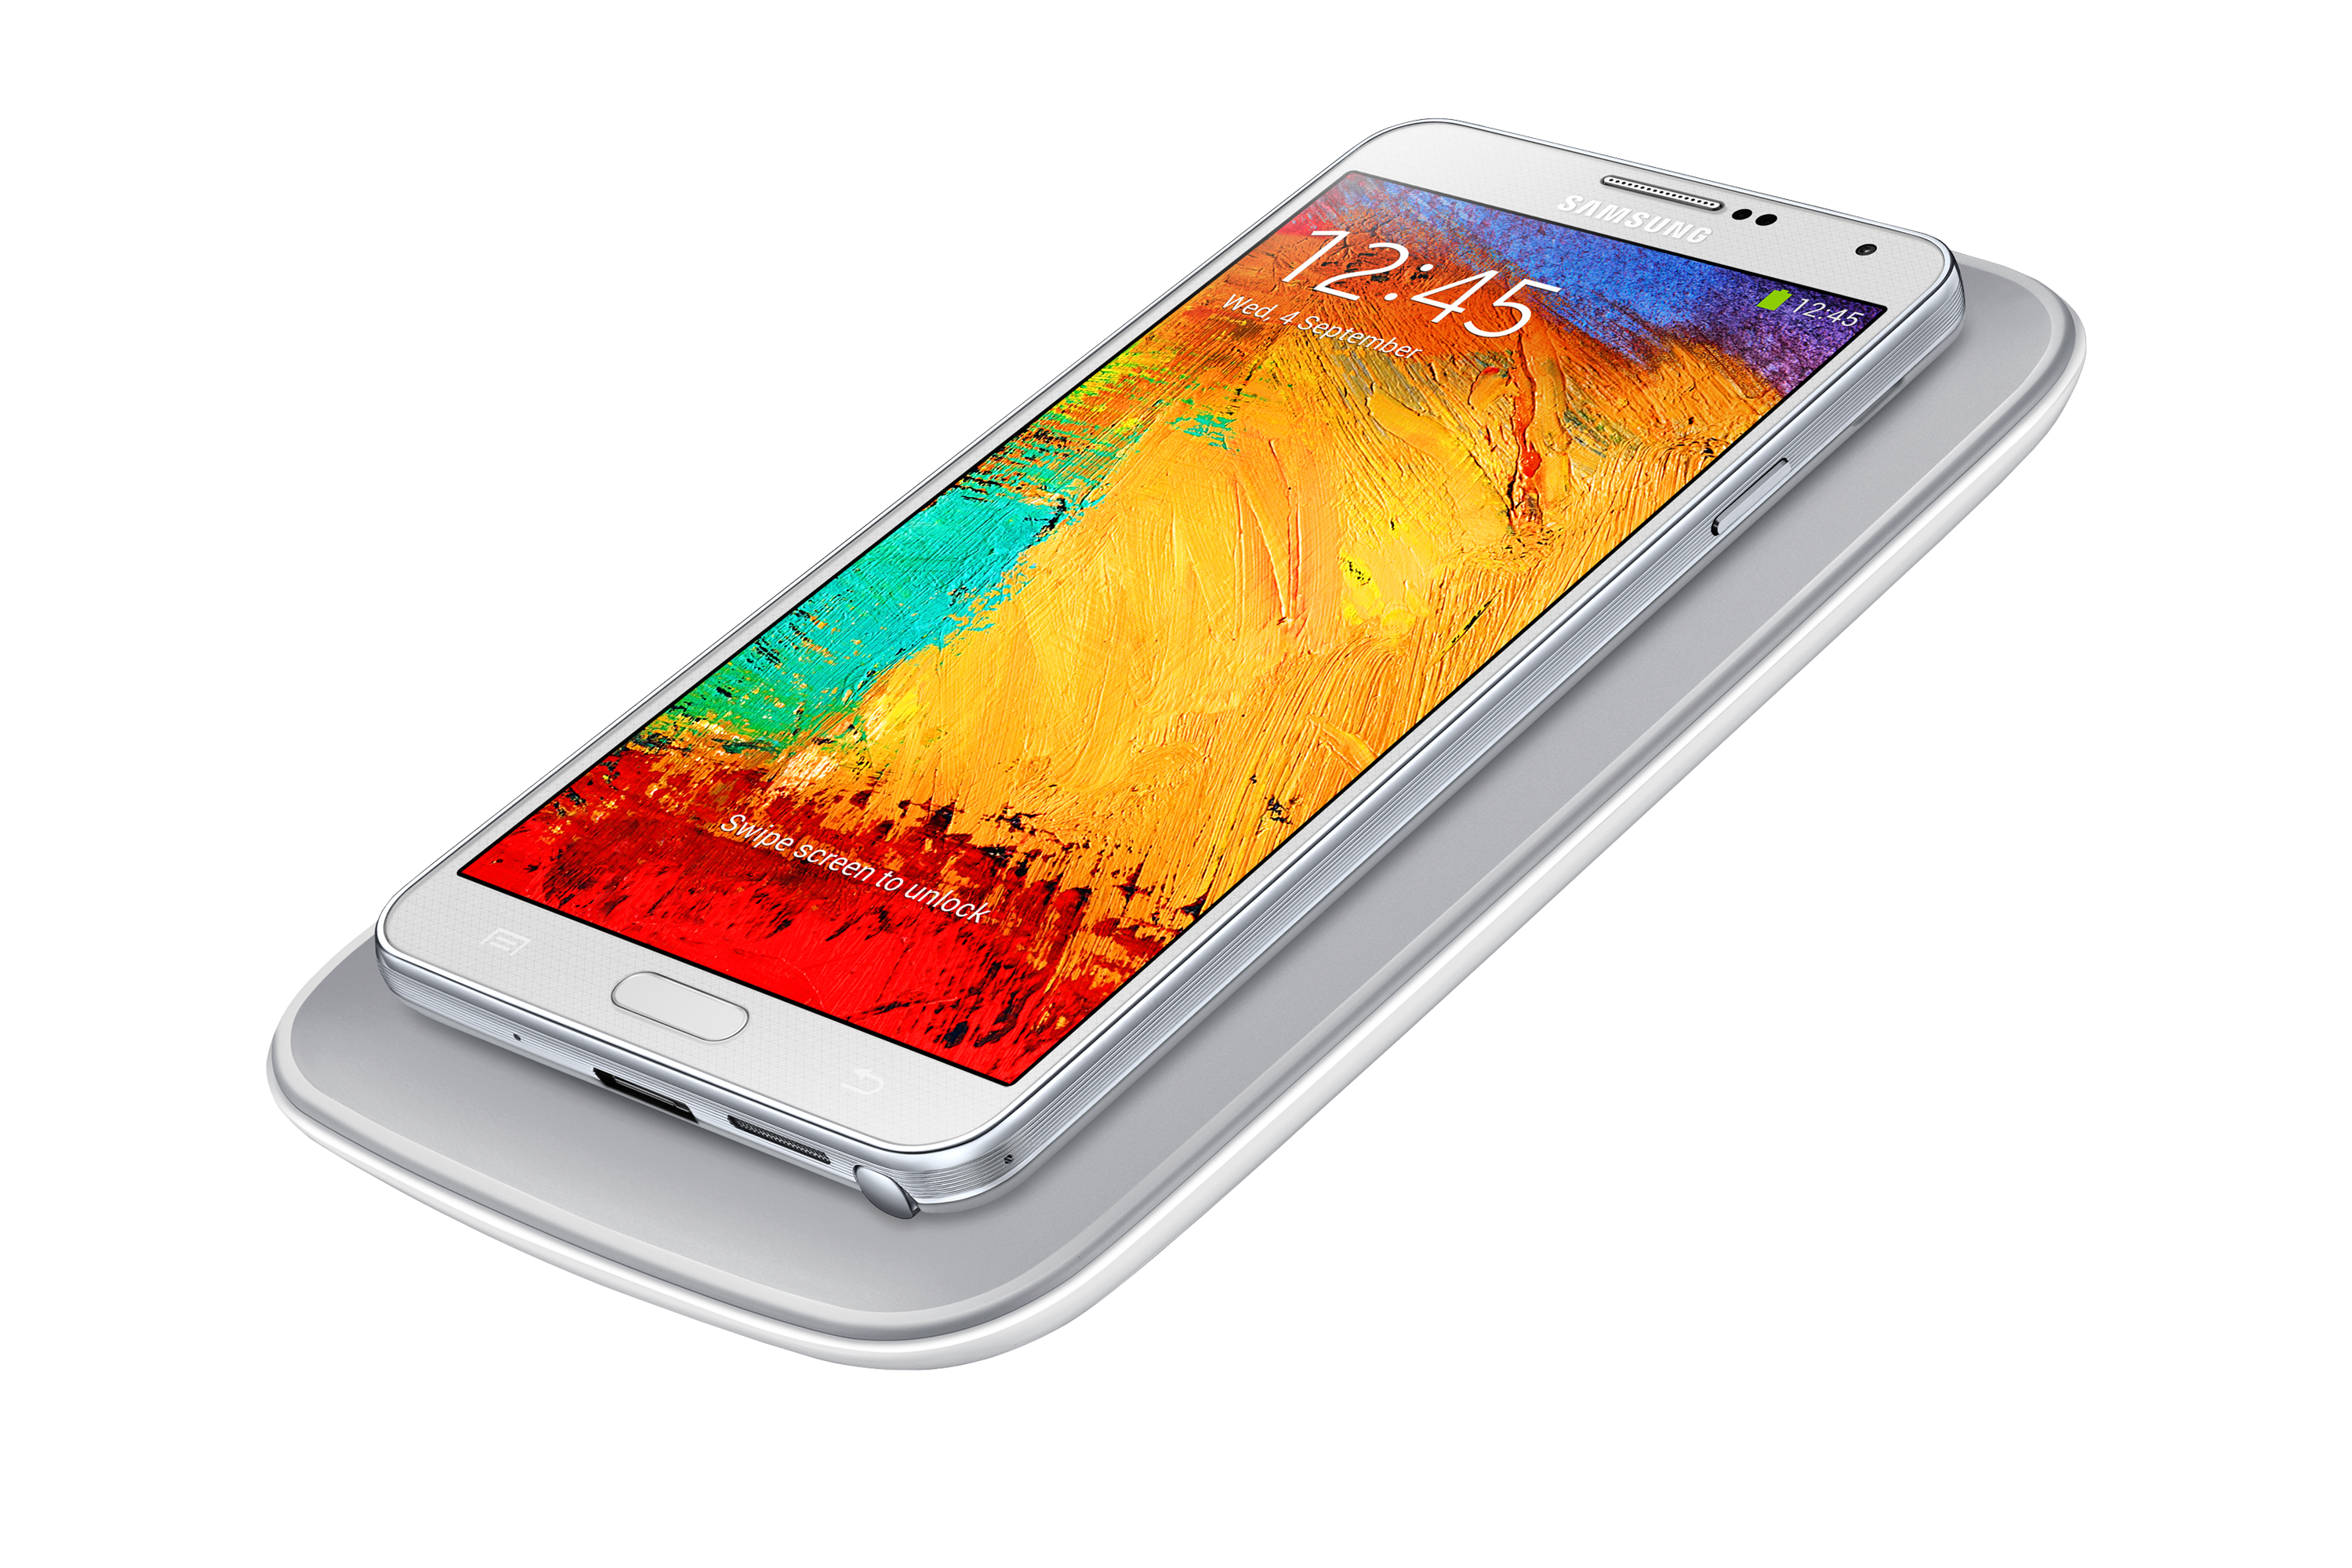 EP-WN900 Galaxy Note 3 - Wireless Charging Kit (White)